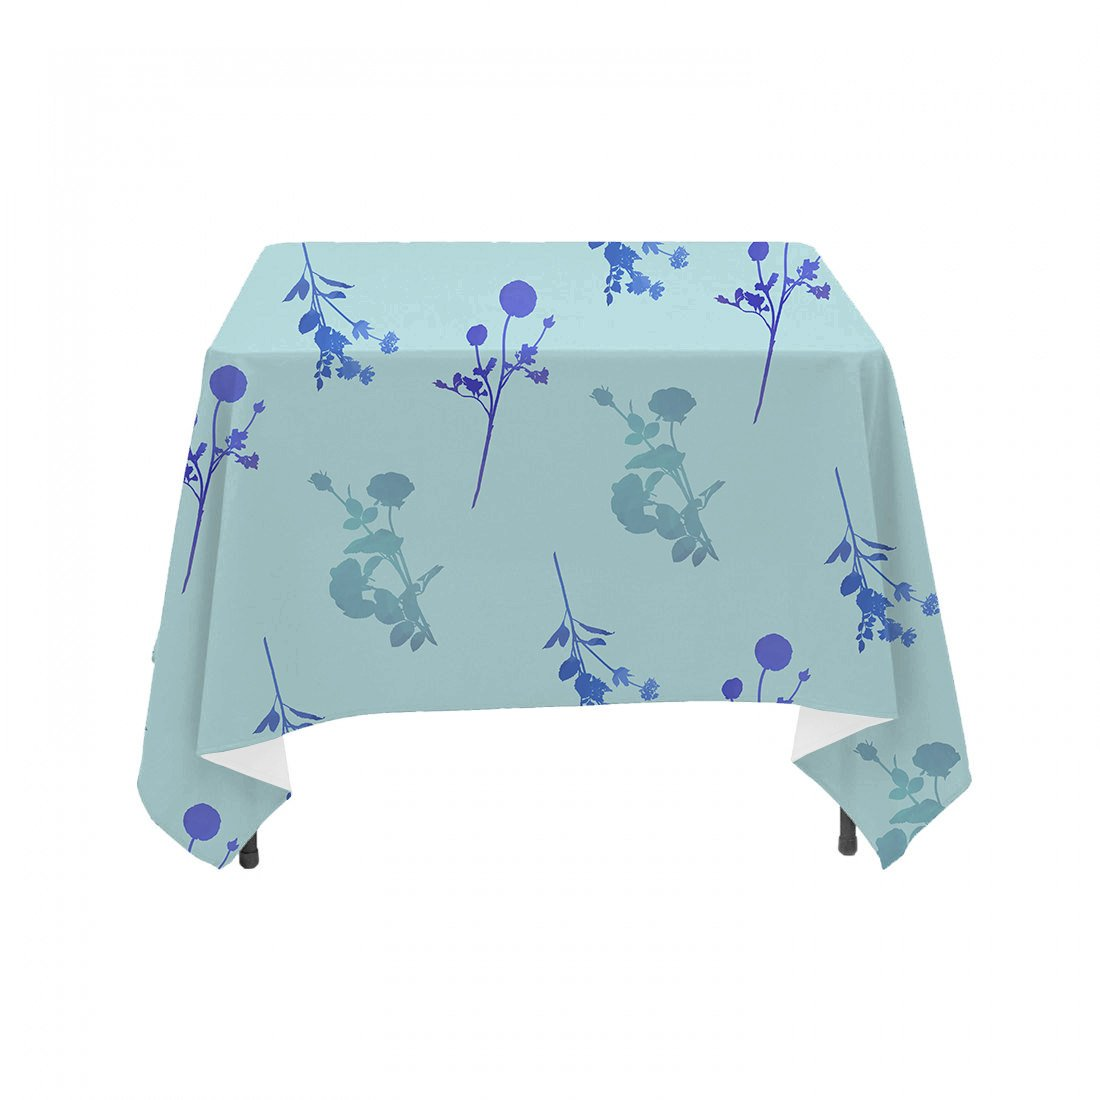 Blue Wildflower Watercolor Floral Stems- Linen Table Cloth